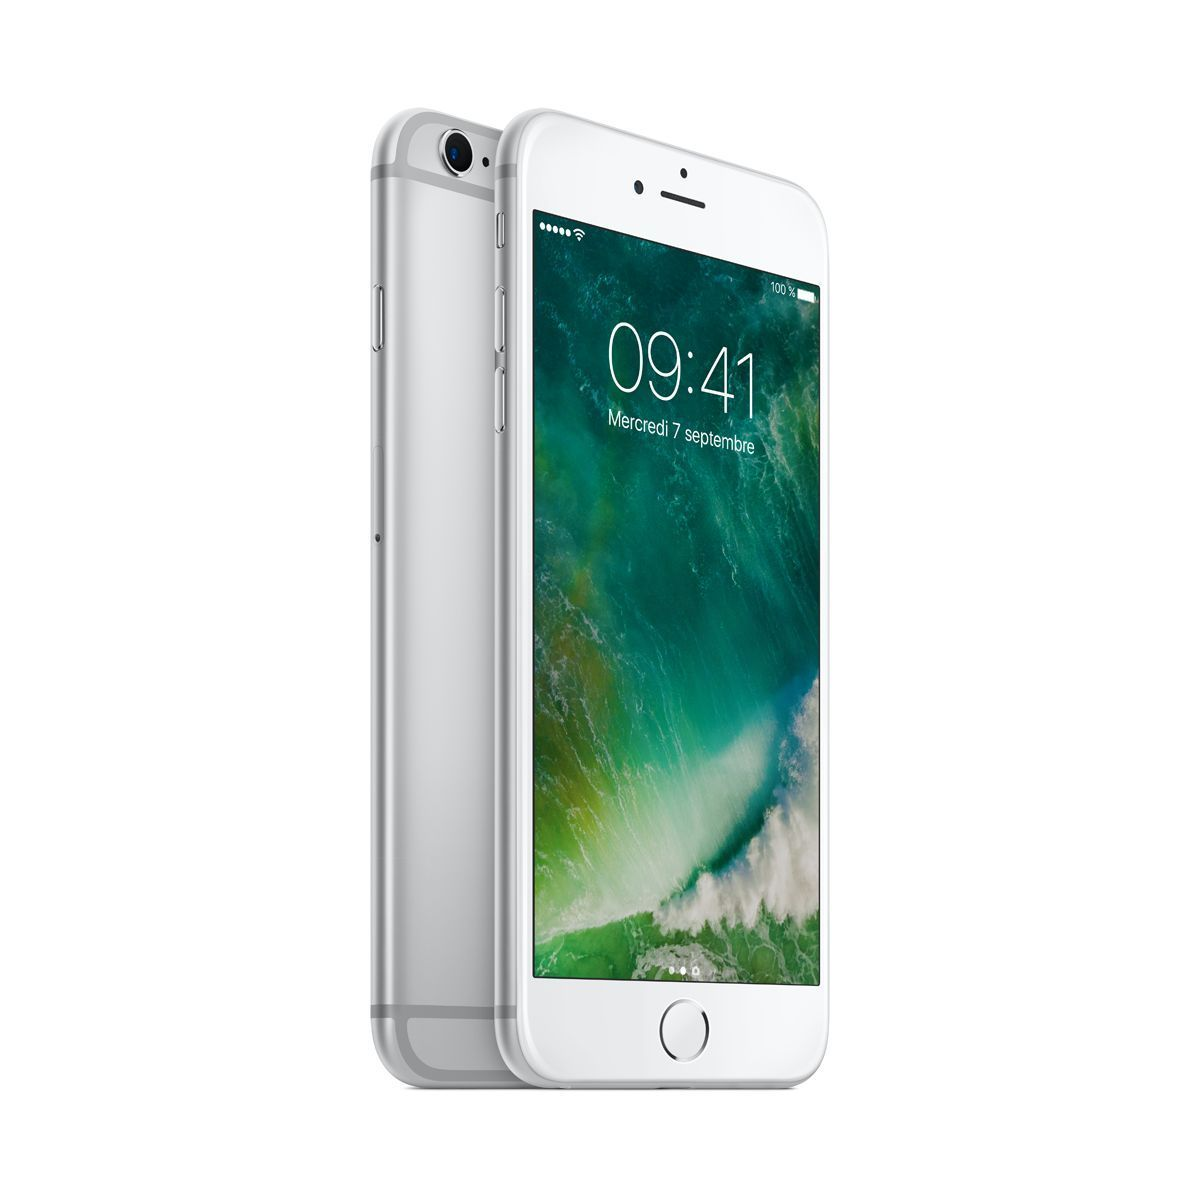 Smartphone Iphone 6s Rose Gold 32go Products Smartphone Bon Appareil Photo Et Iphone